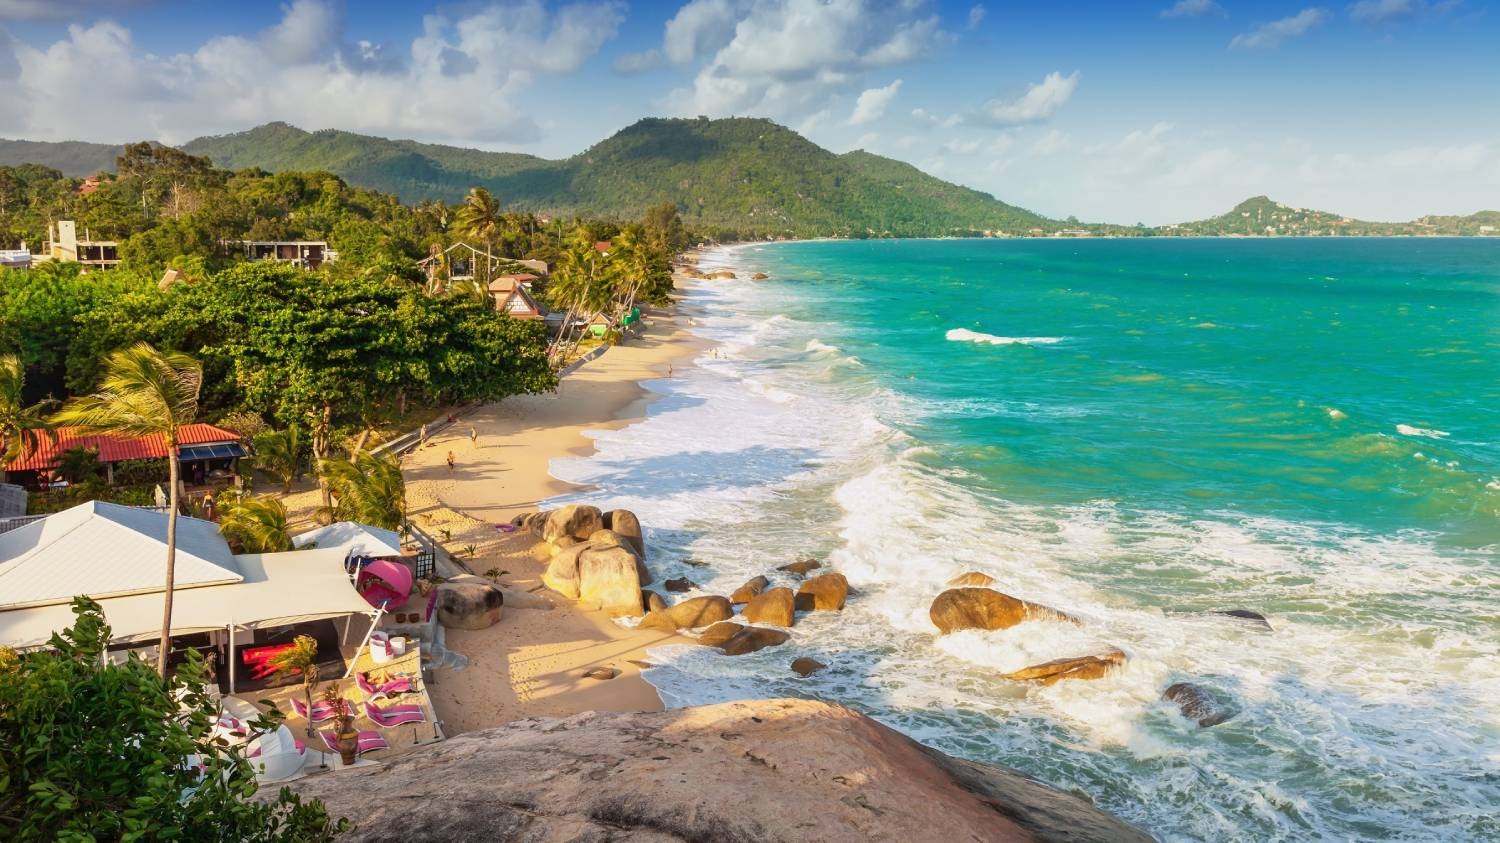 Koh Samui - The Best Places To Visit In Thailand